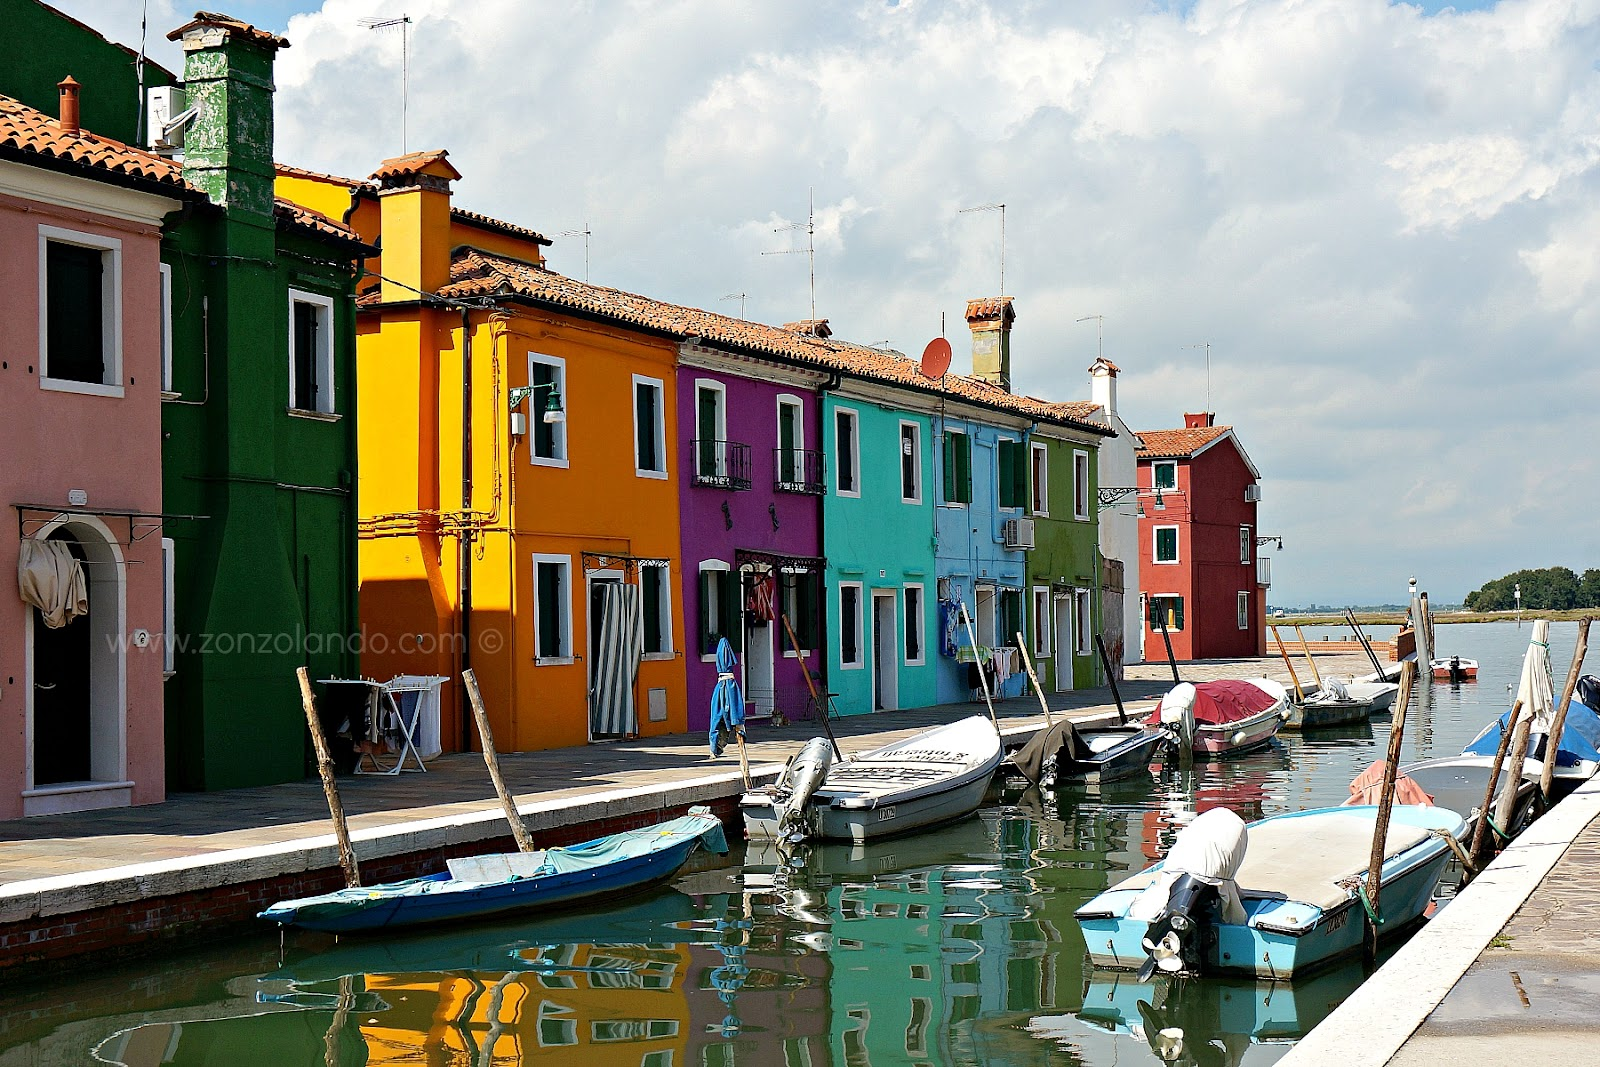 Burano come arrivare cosa vedere Venezia case colorate foto colored houses pictures from Burano